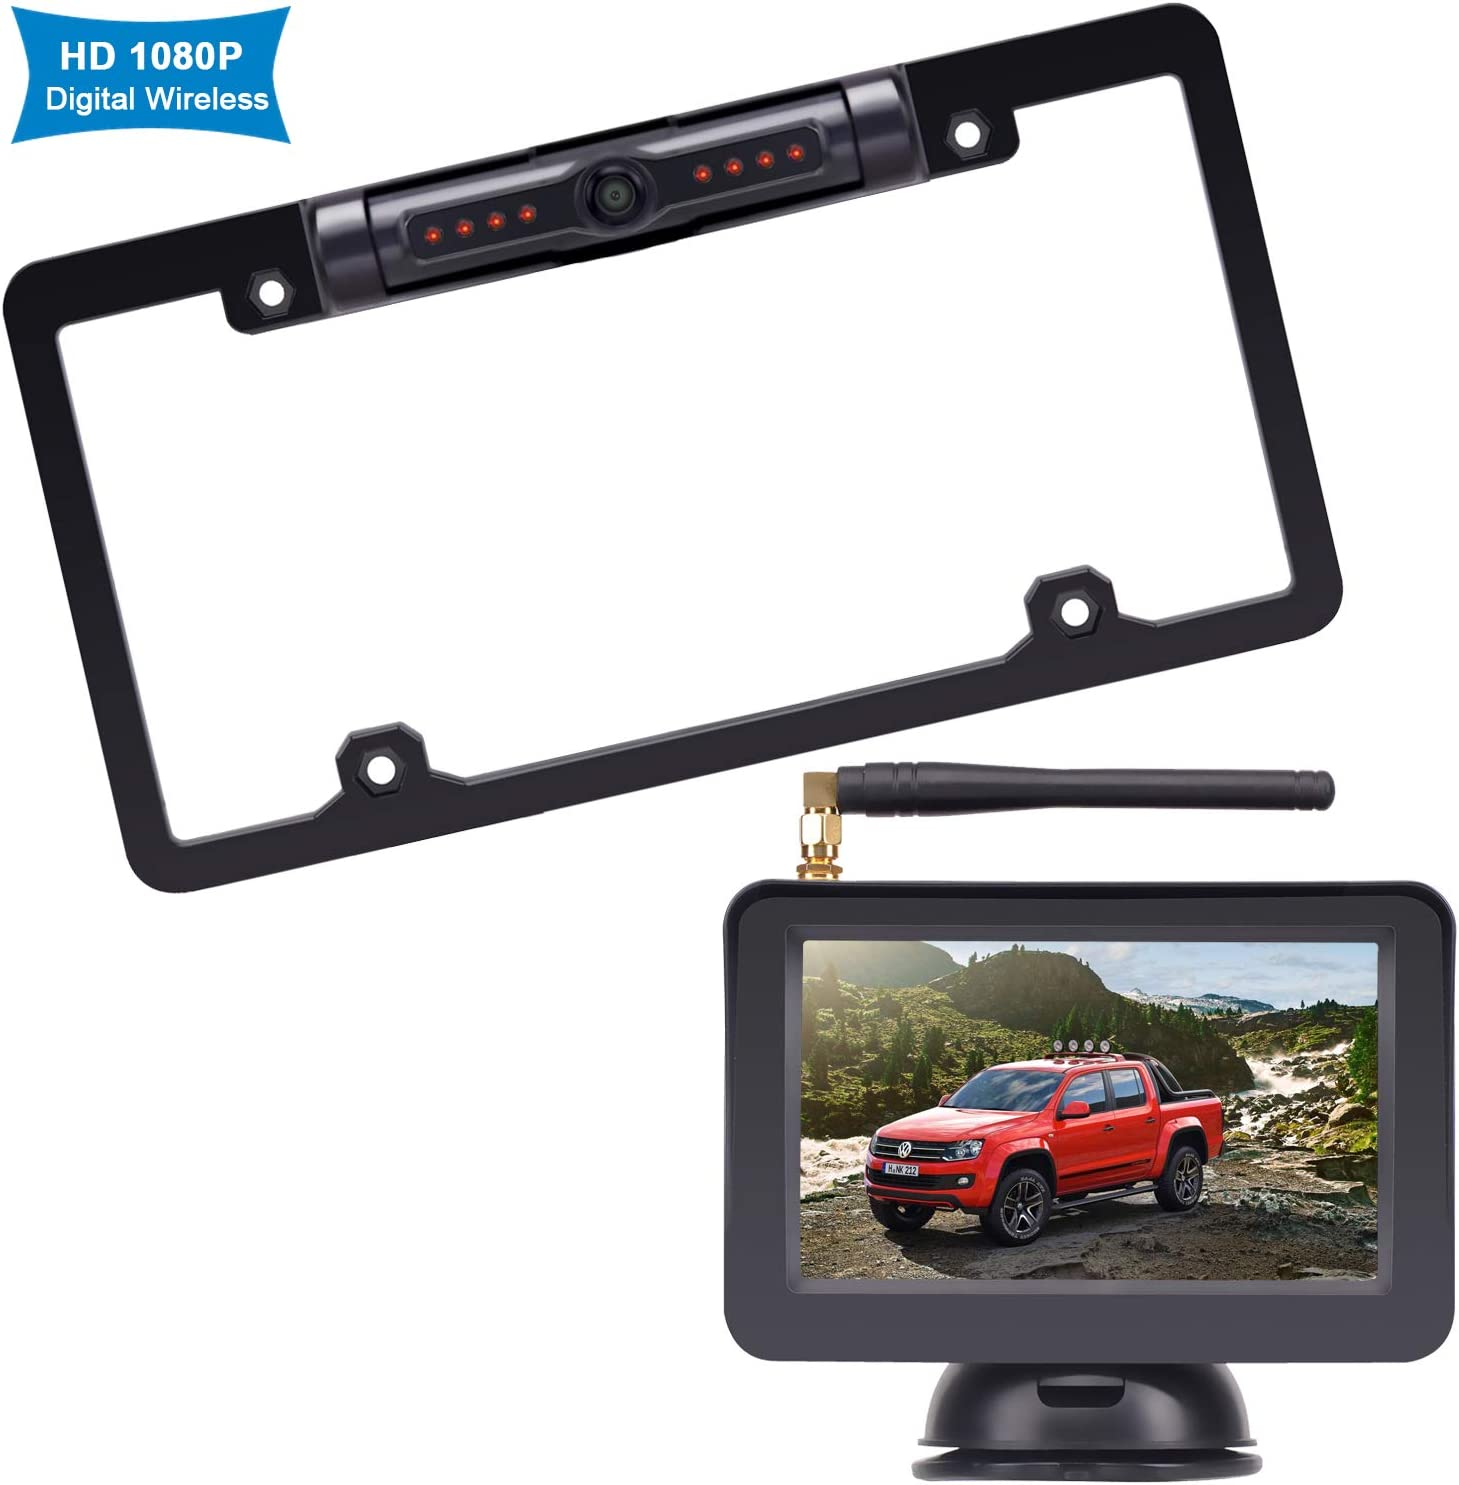 Rohent R3 HD 1080P Digital Wireless Backup Camera with 5'' Monitor License Plate Hitch Rear View Camera System